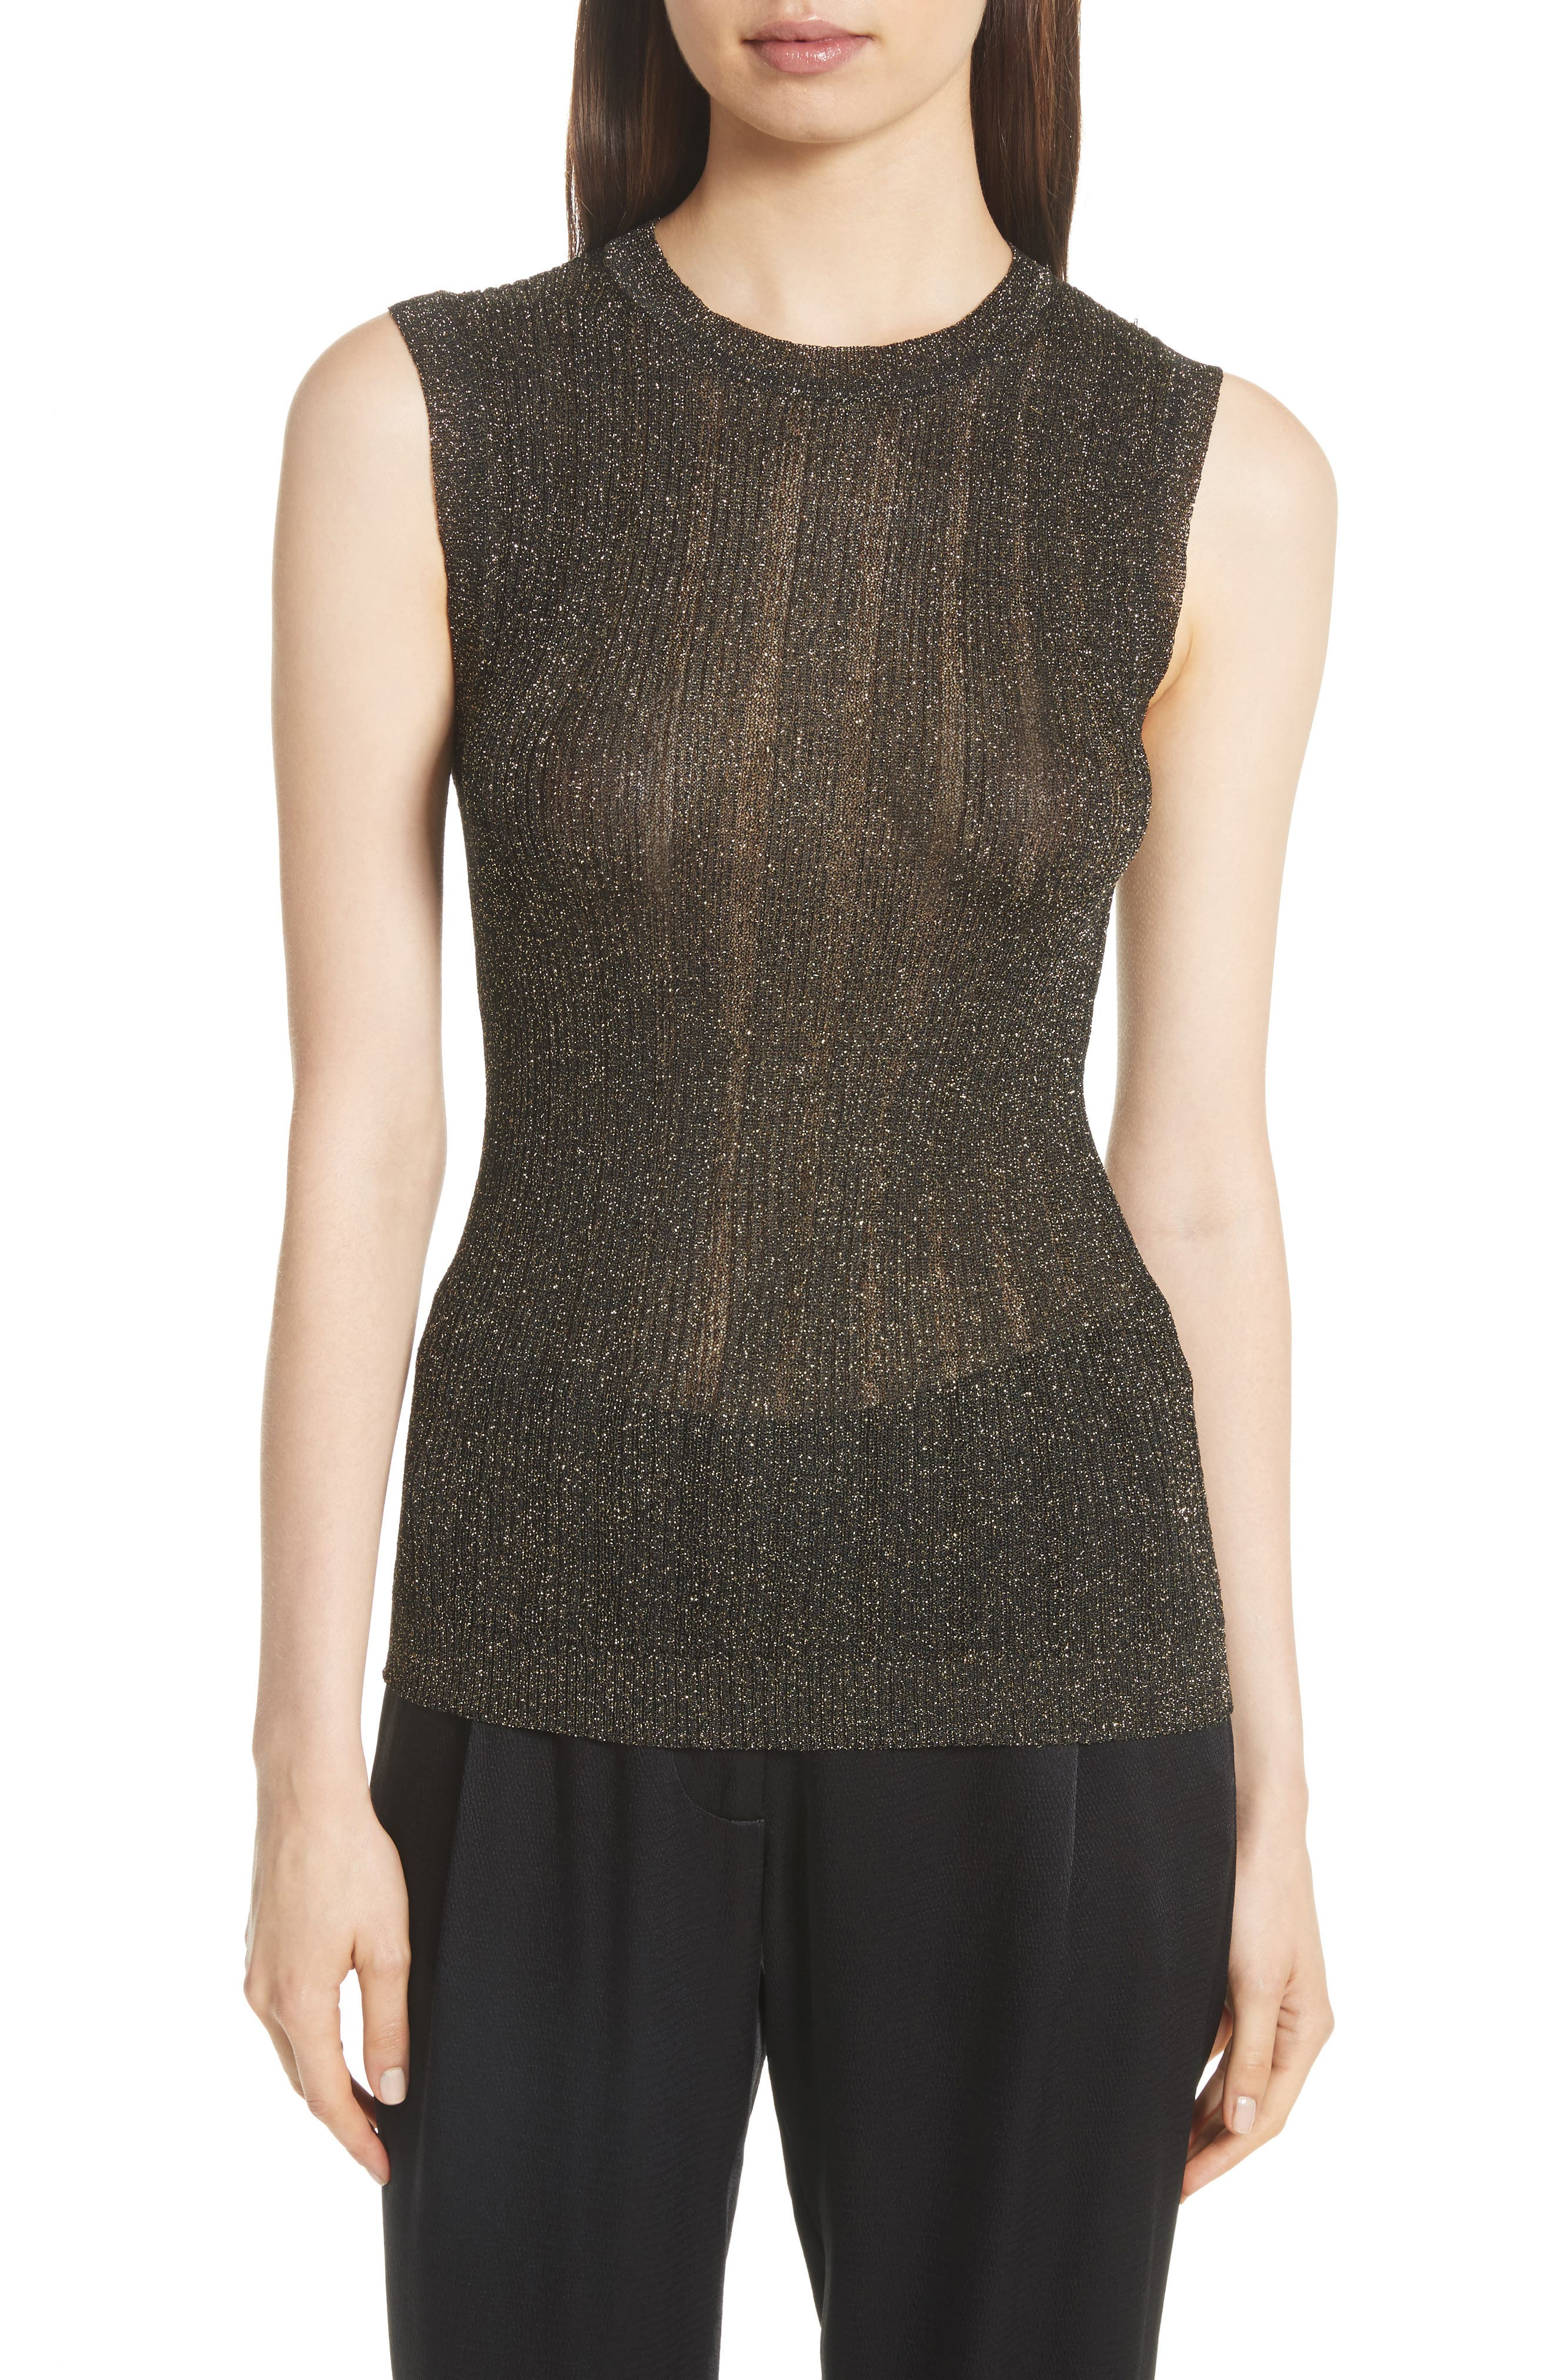 Lace Metallic Knit Top,                         Main,                         color, Black And Gold Bag